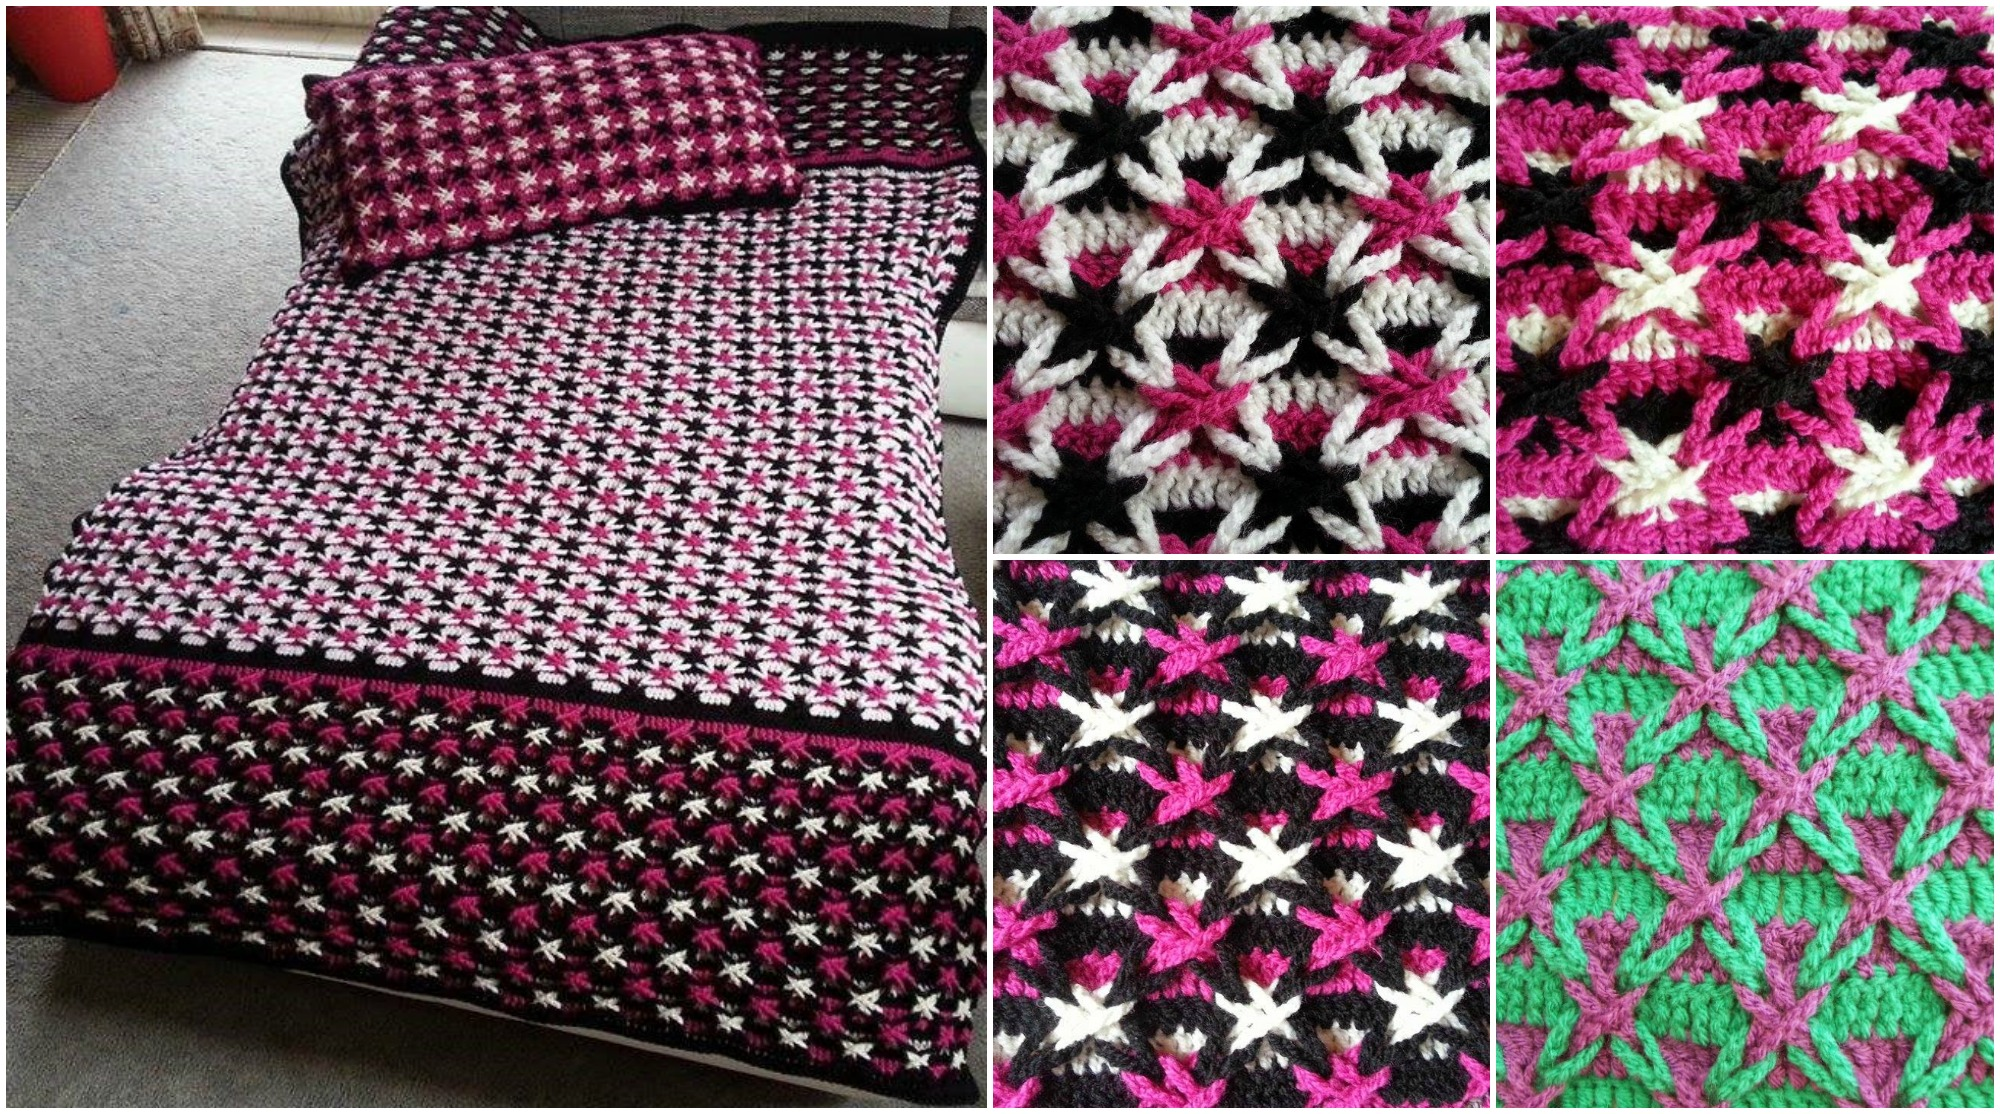 Polish star stitch blanket pretty ideas polish star stitch blanket dt1010fo